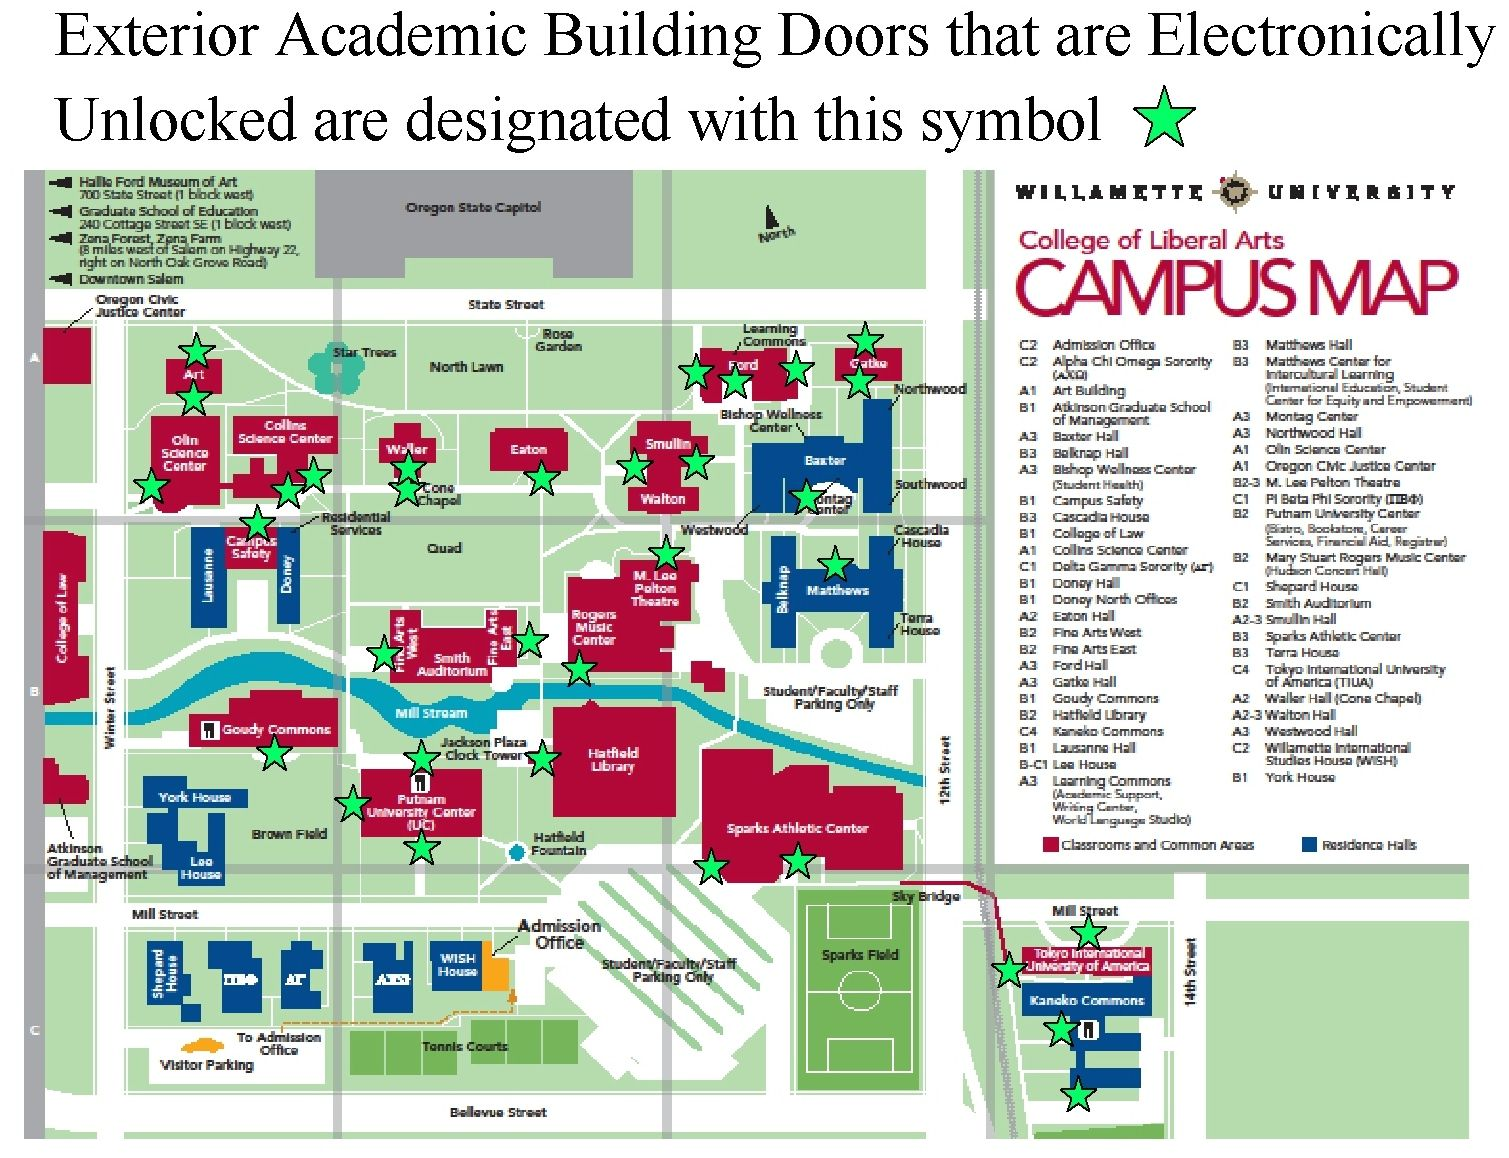 willamette university campus map Campus Safety Click Door Lock Policy Map Willamette University willamette university campus map